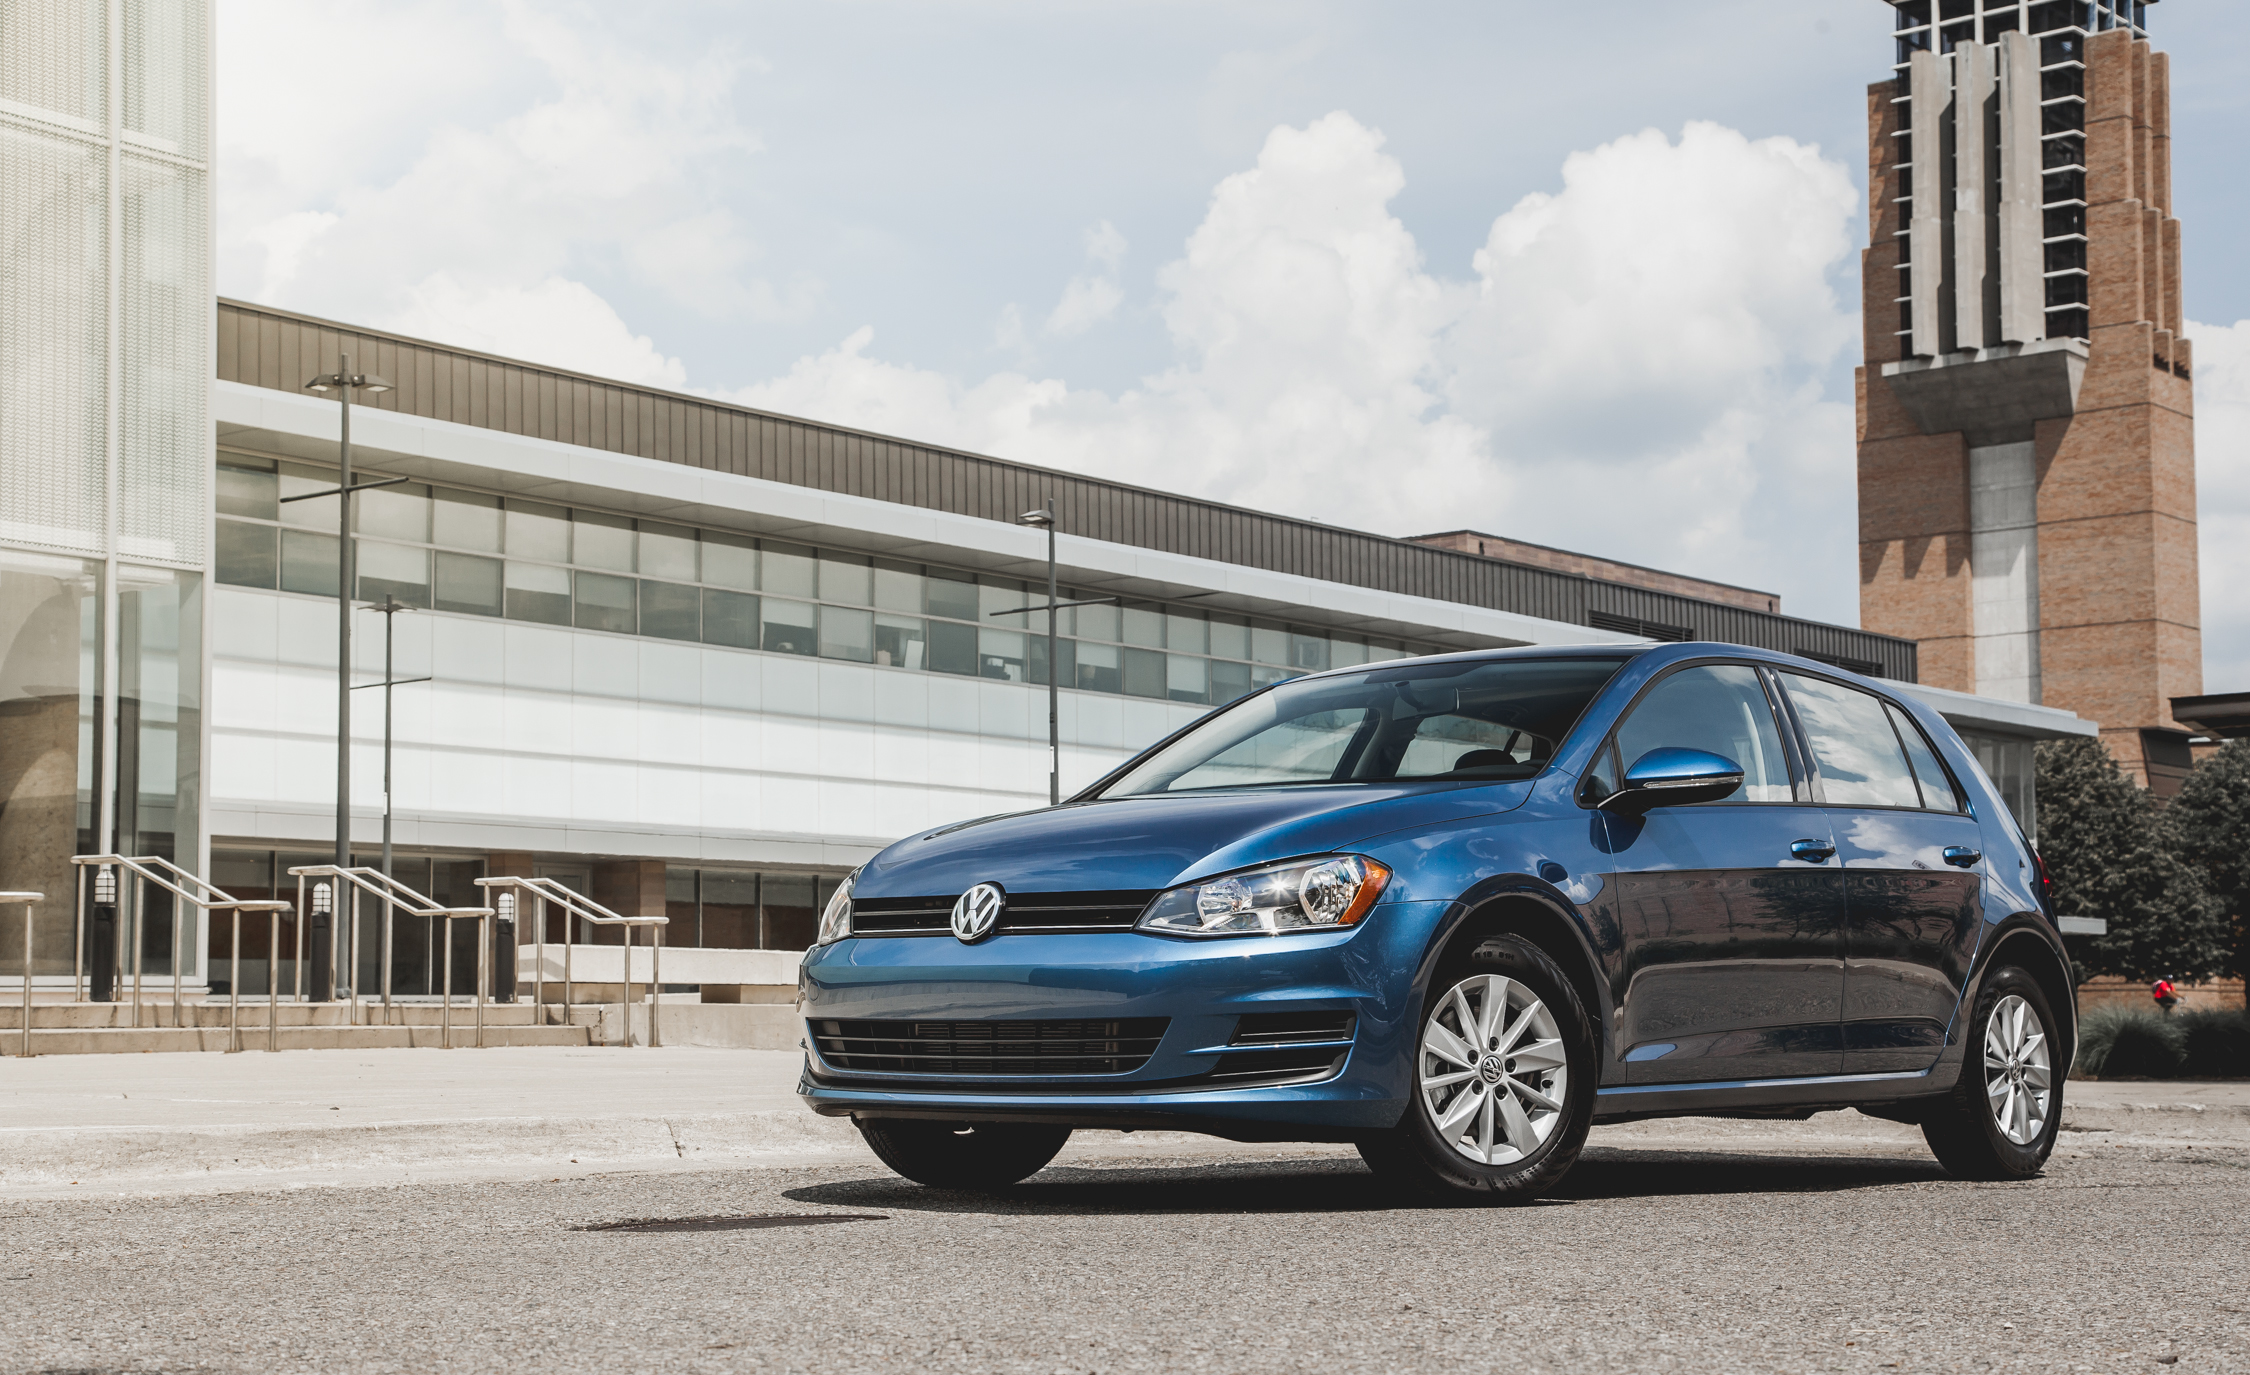 2015 Volkswagen Golf TSI Exterior Front and Side